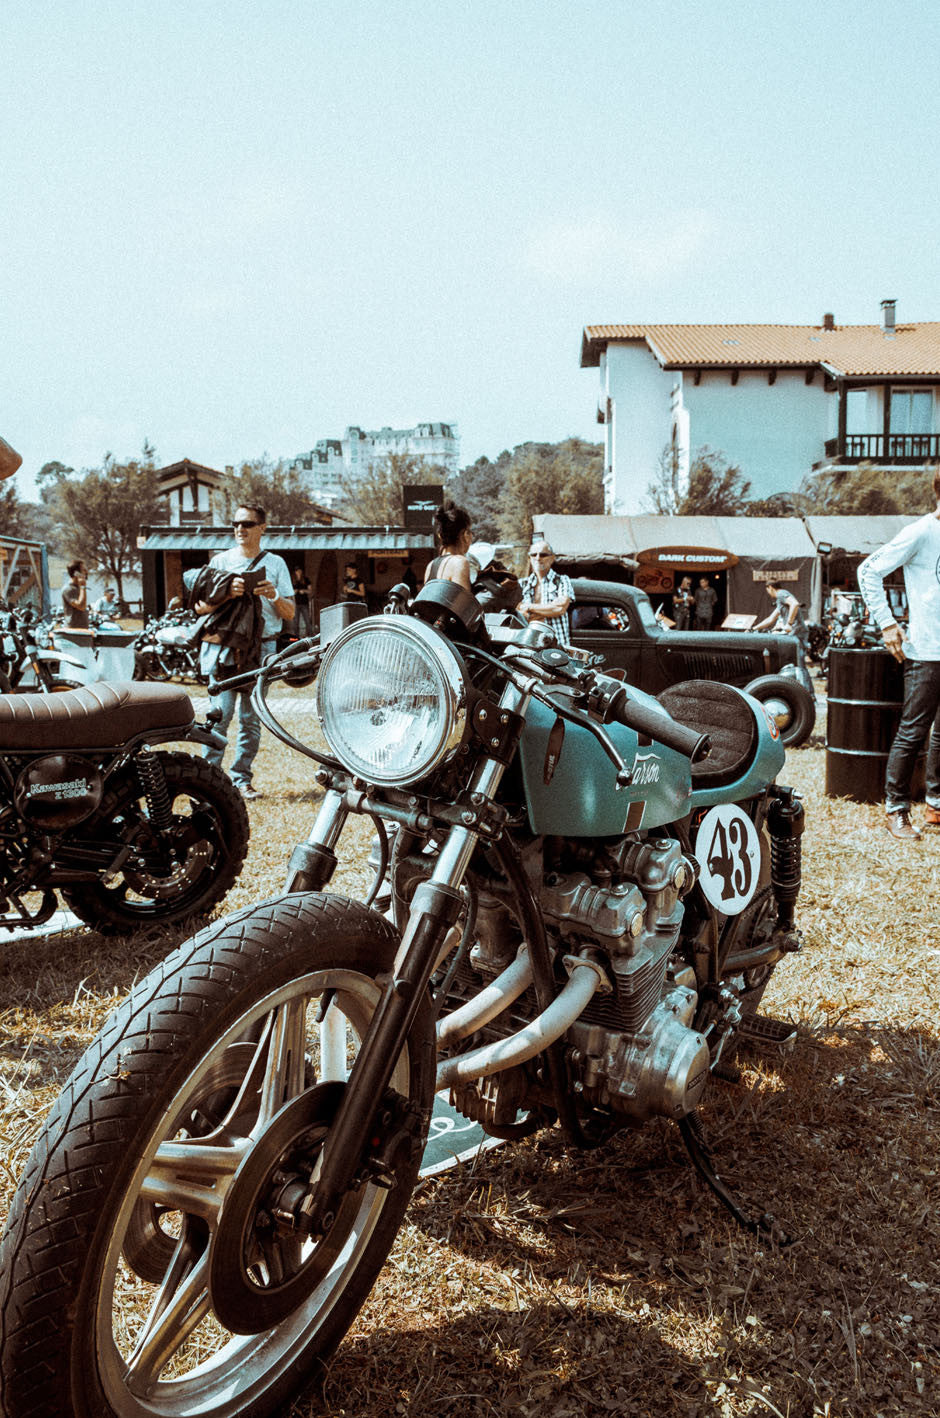 WHEELS & WAVES 2017 WNW 2017 WHEELS AND WAVES PANDCO P&CO BIARRITZ FRANCE MOTORCYCLE CAFE RACERS CUSTOM SURF